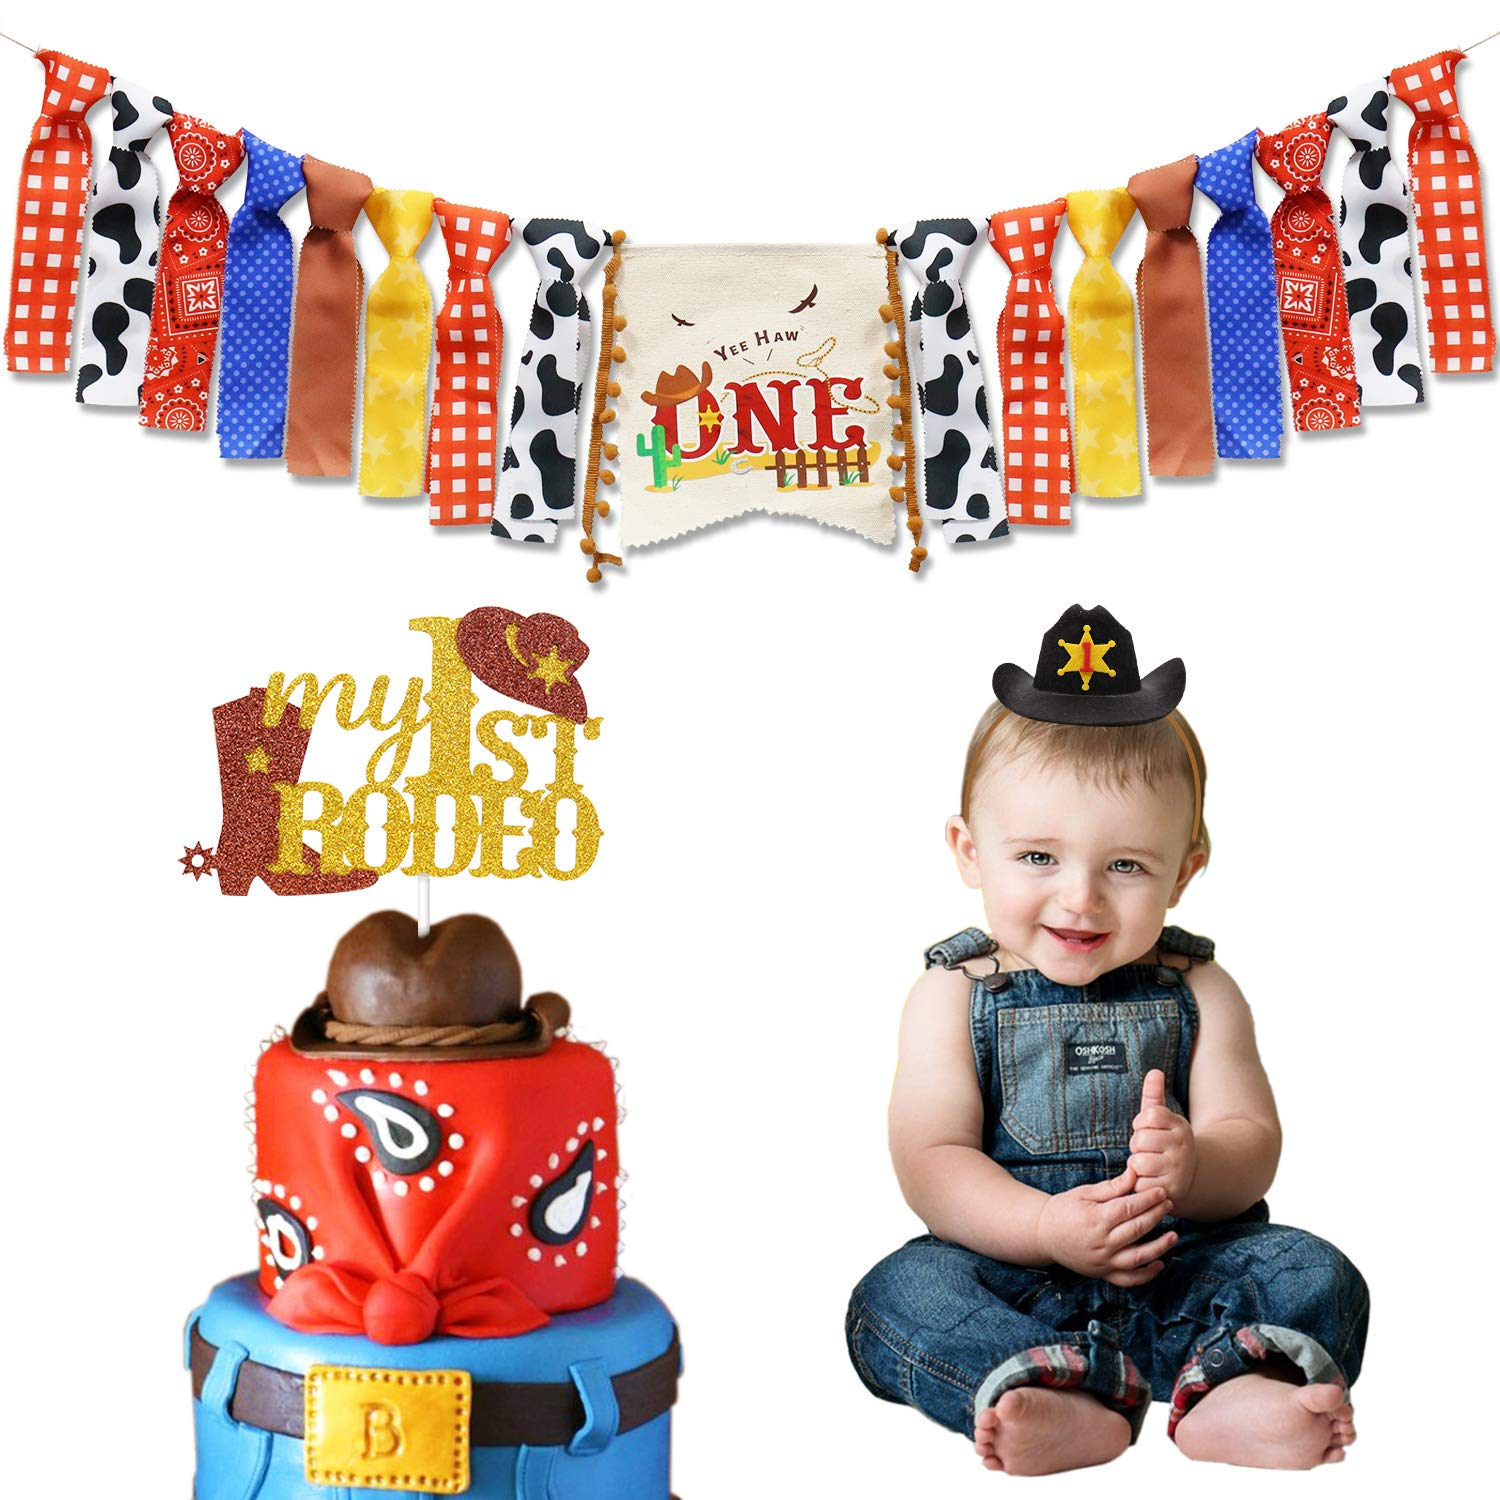 Outstanding Cowboy First Birthday Party Decorations Wild West Cowboy Highchair Funny Birthday Cards Online Alyptdamsfinfo